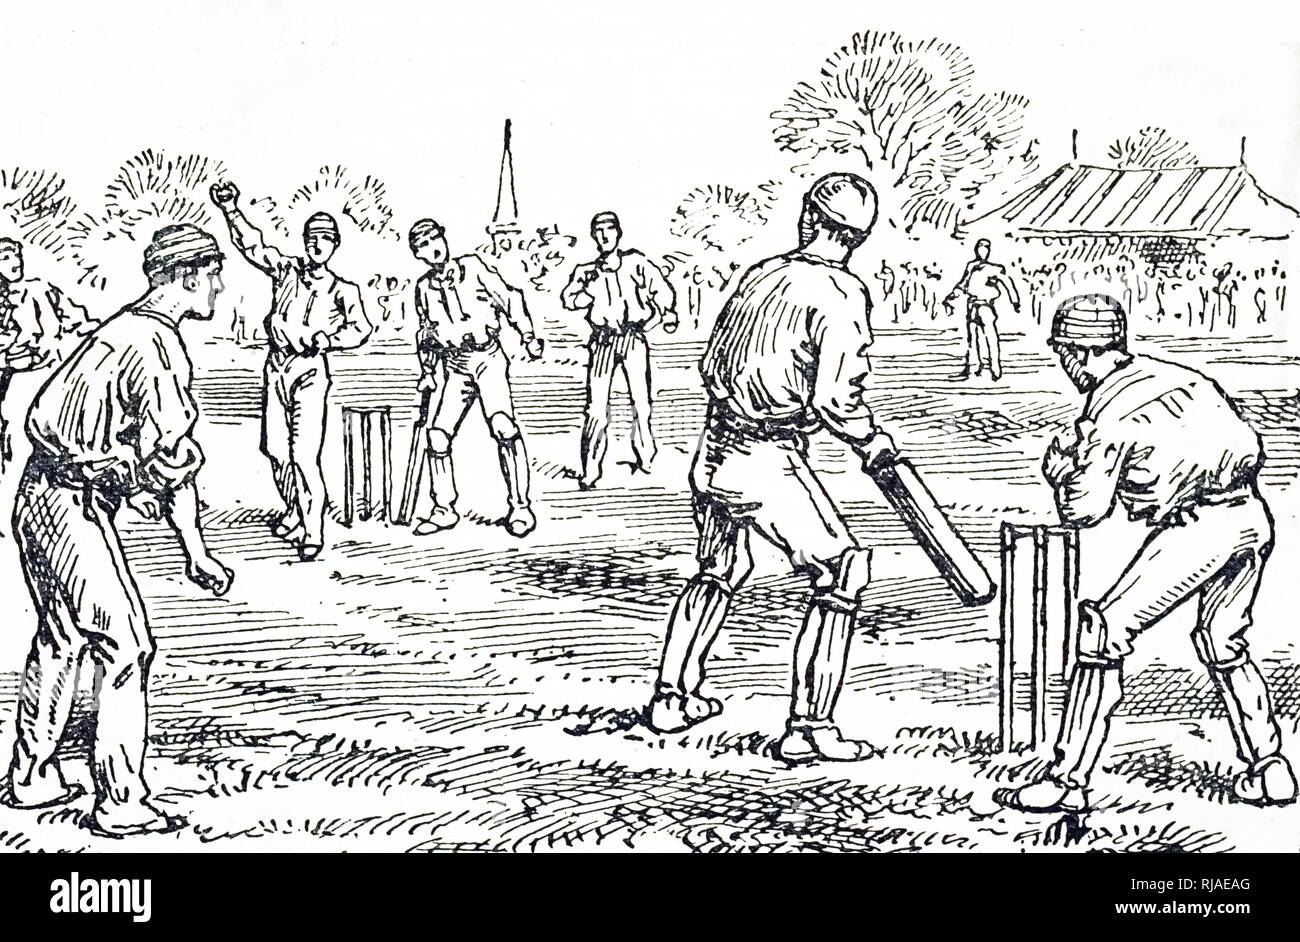 An engraving depicting a cricket game in progress. Dated 19th century - Stock Image